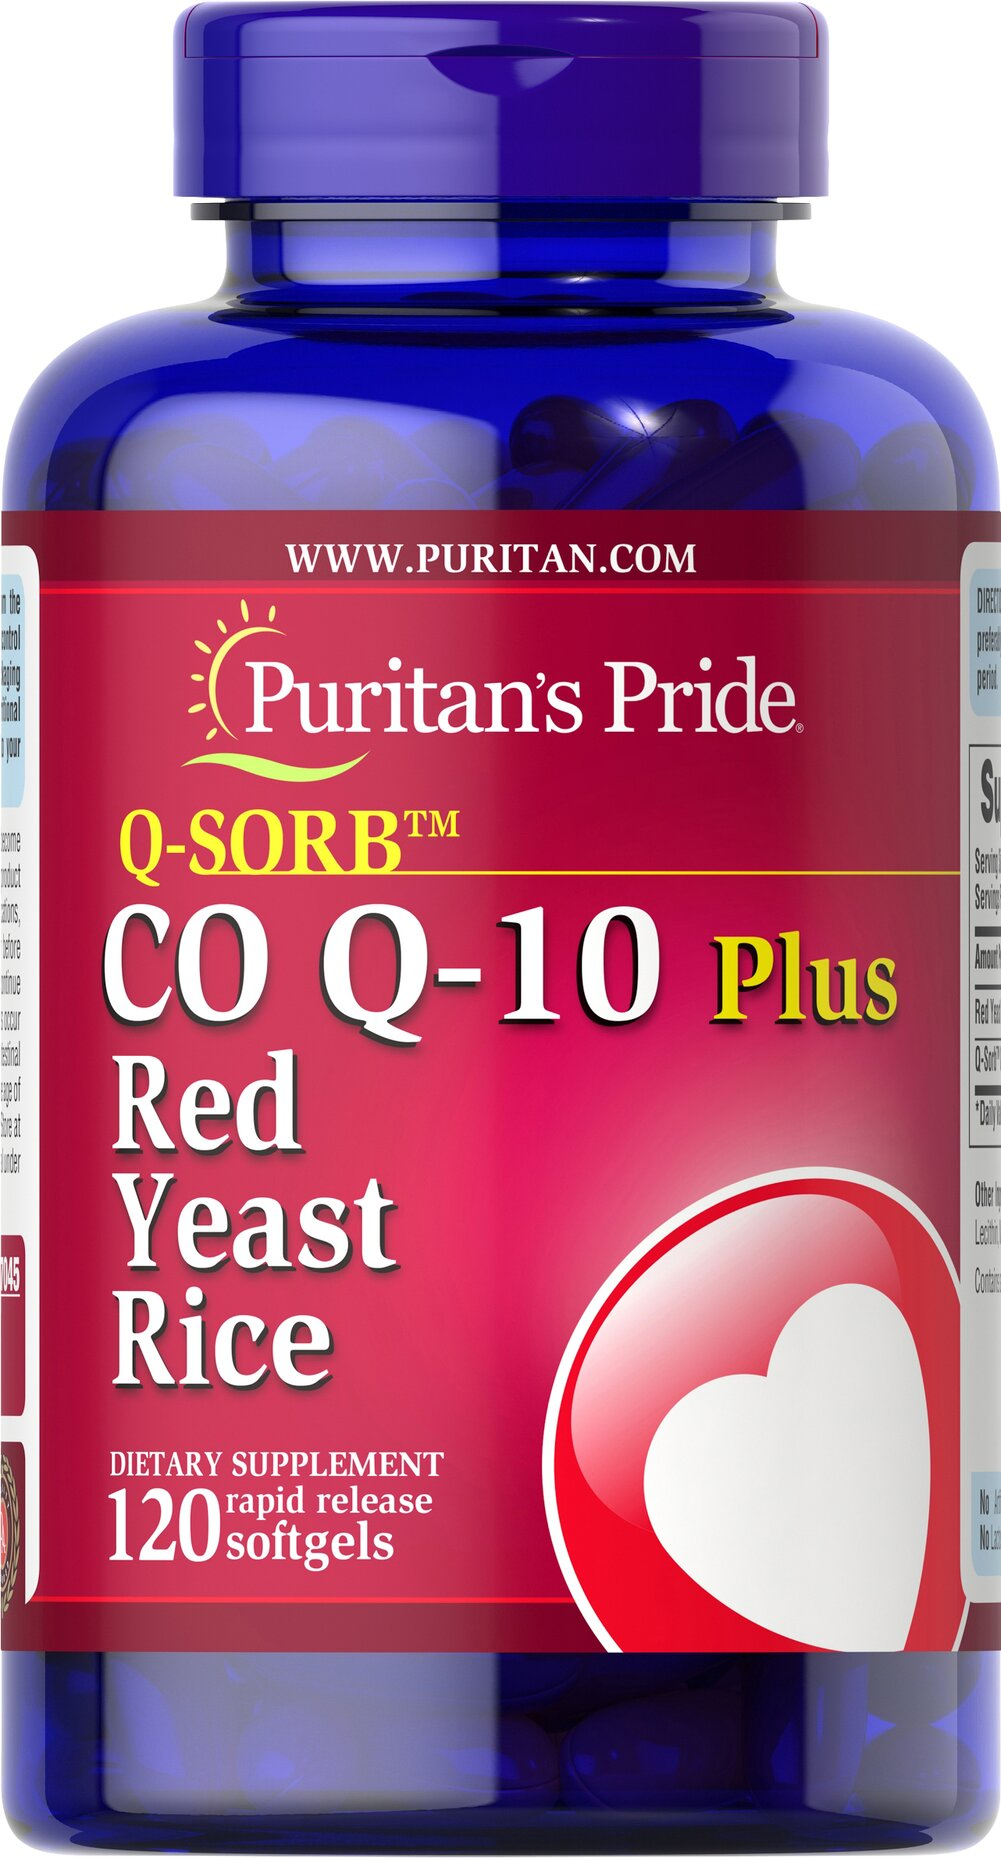 Q-SORB™ Co Q-10 60 mg plus Red Yeast Rice 600 mg <p>A powerful antioxidant combined with an ingredient whose traditional goodness has been valued for centuries can only mean one thing… <strong>Co Q-10 Plus Red Yeast Rice.</strong></p><p>Red Yeast Rice has been a part of the traditional Chinese diet for centuries, and Coenzyme Q-10 promotes energy production and is an important contributor to antioxidant and heart health.** Only two softgels a day brings you these ma